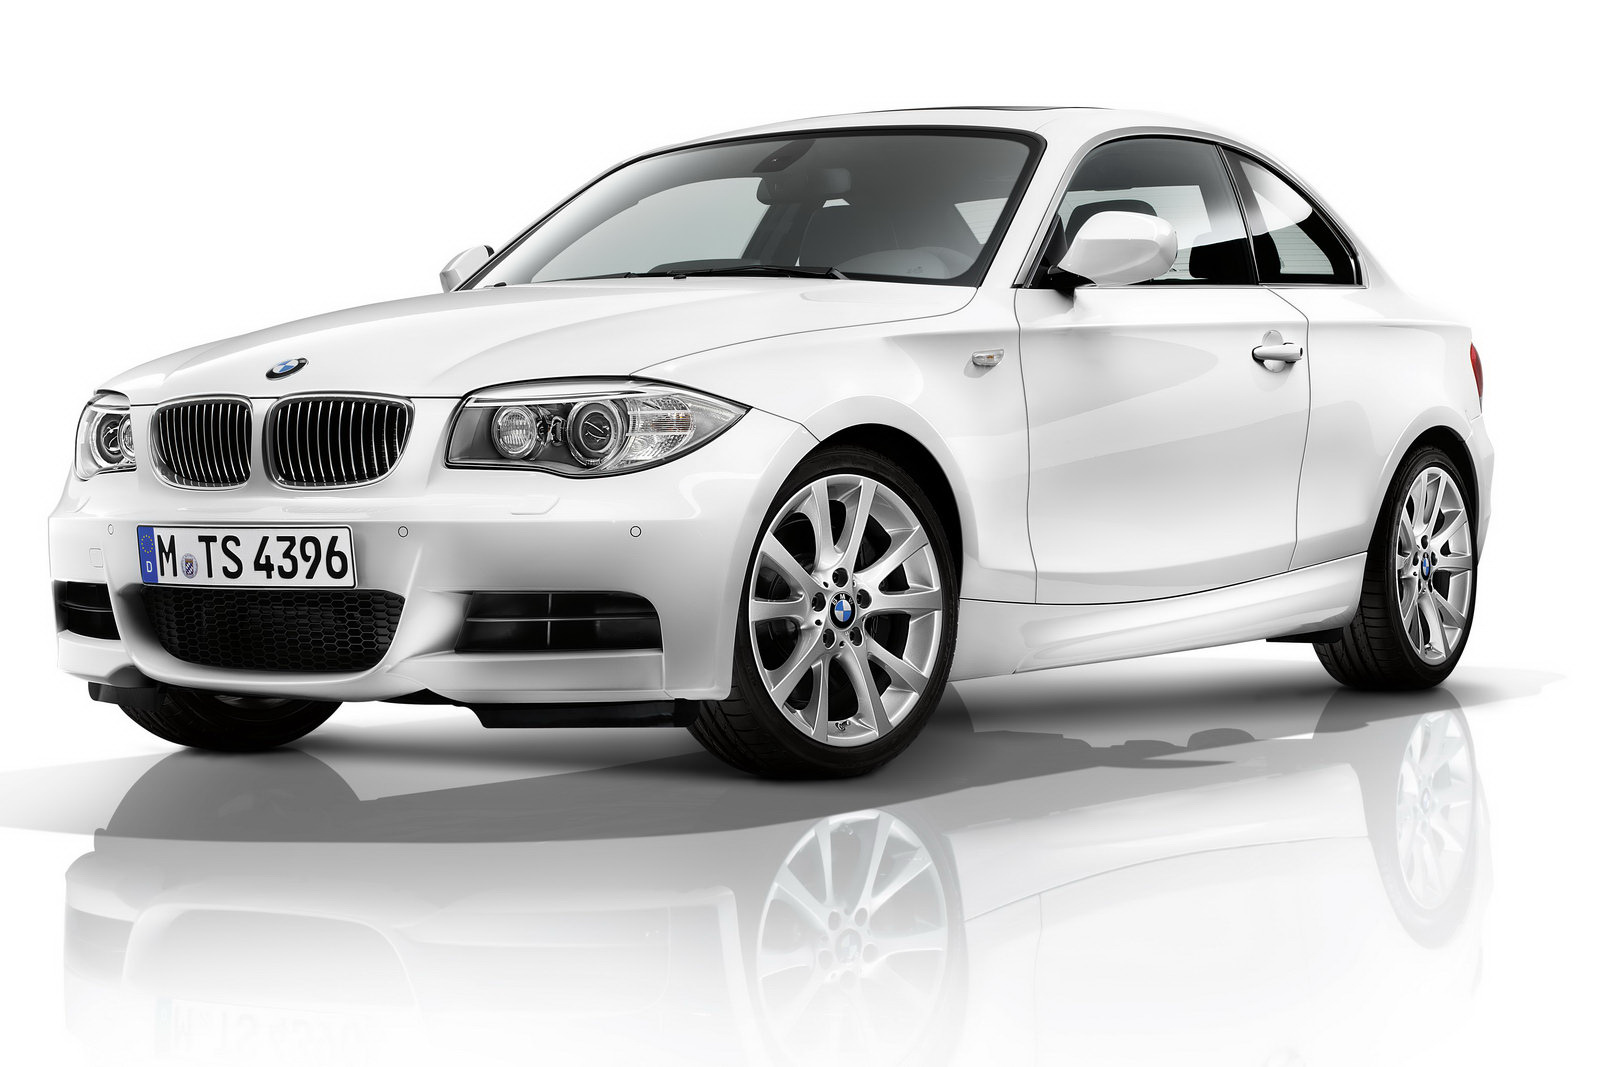 bmw 1er coup photos 13 on better parts ltd. Black Bedroom Furniture Sets. Home Design Ideas